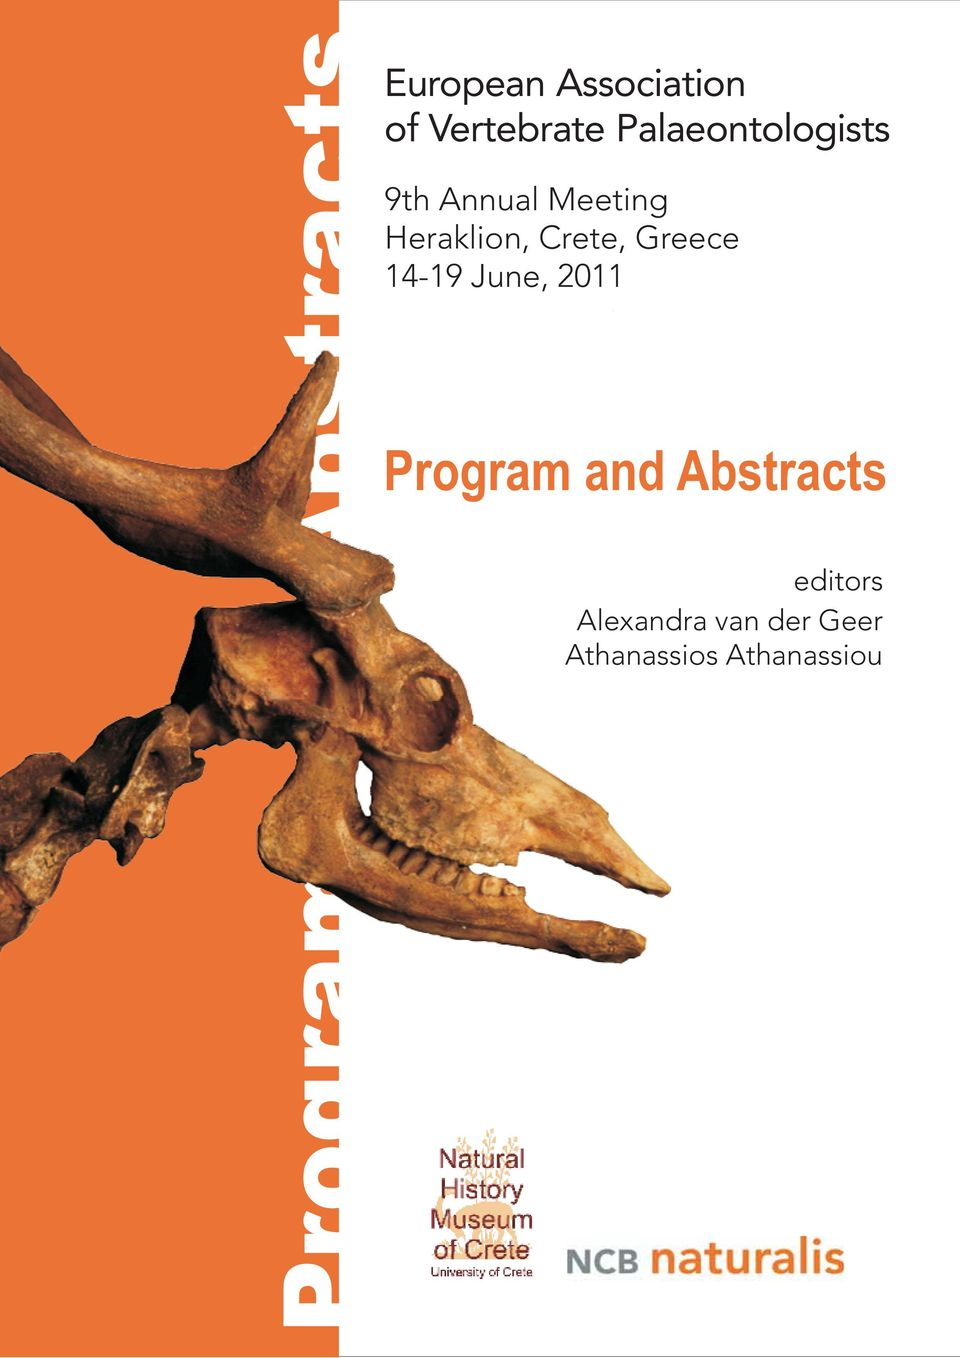 Heraklion, Crete, Greece 14-19 June, 2011 Program